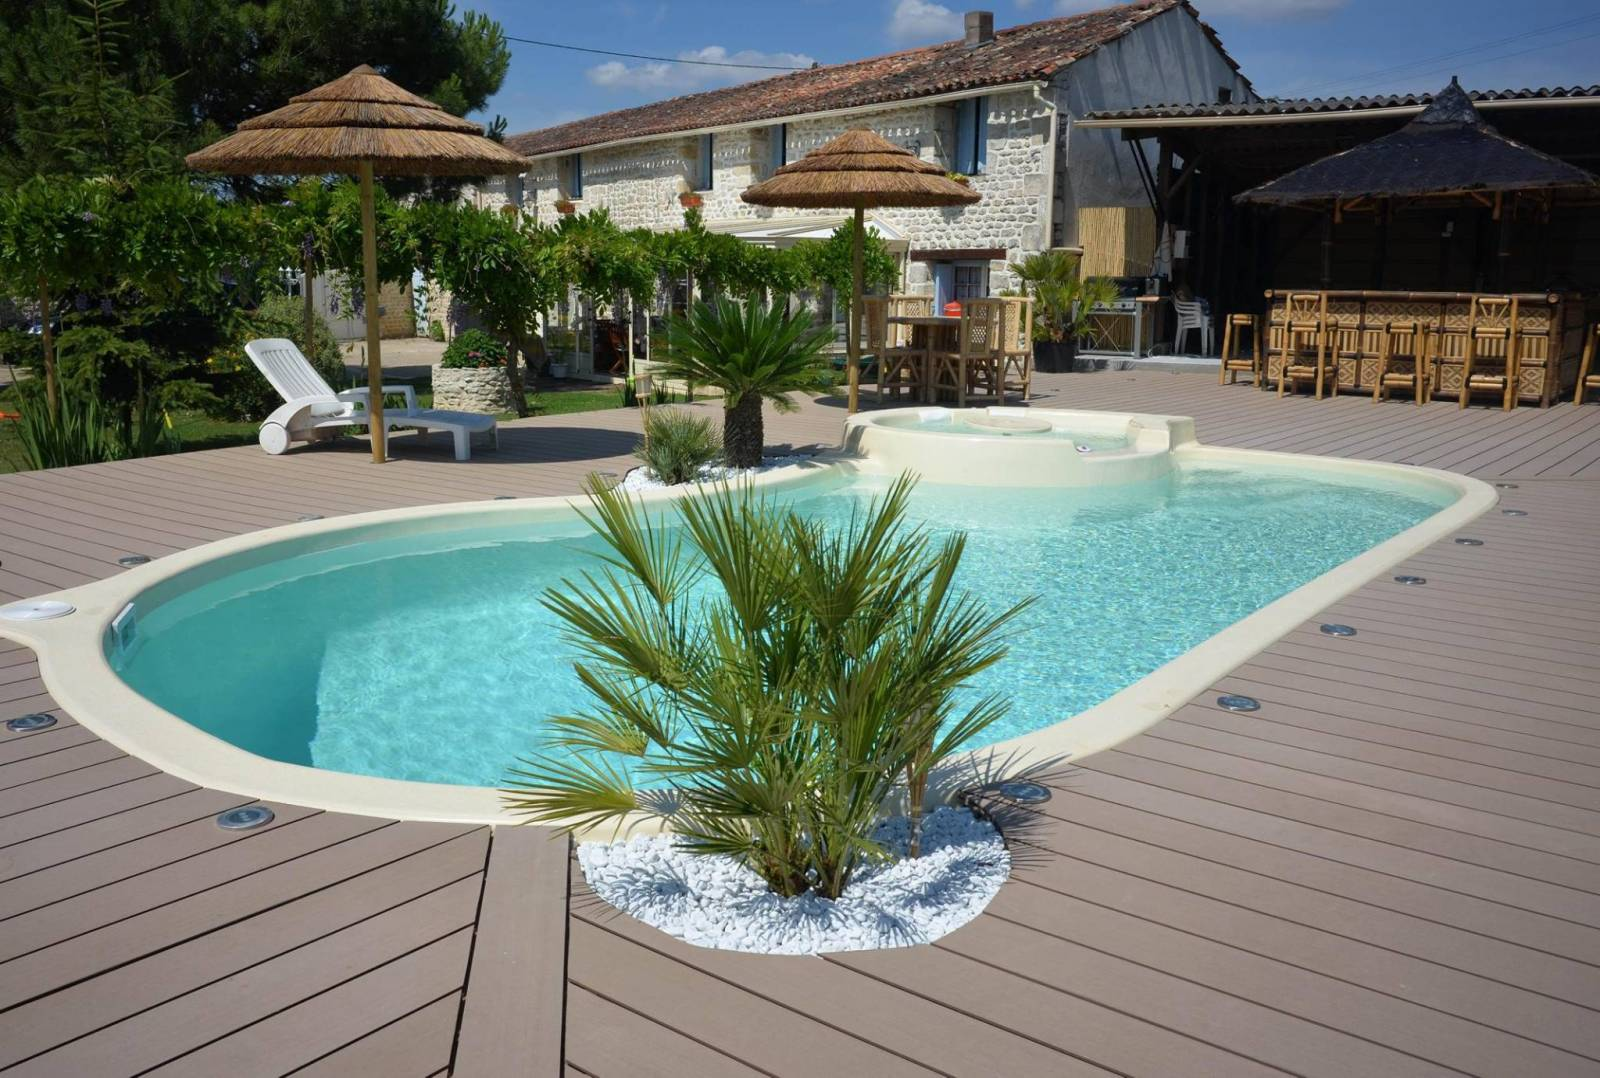 Fabricant de piscines coque montpellier freedom piscines for Vente piscine coque